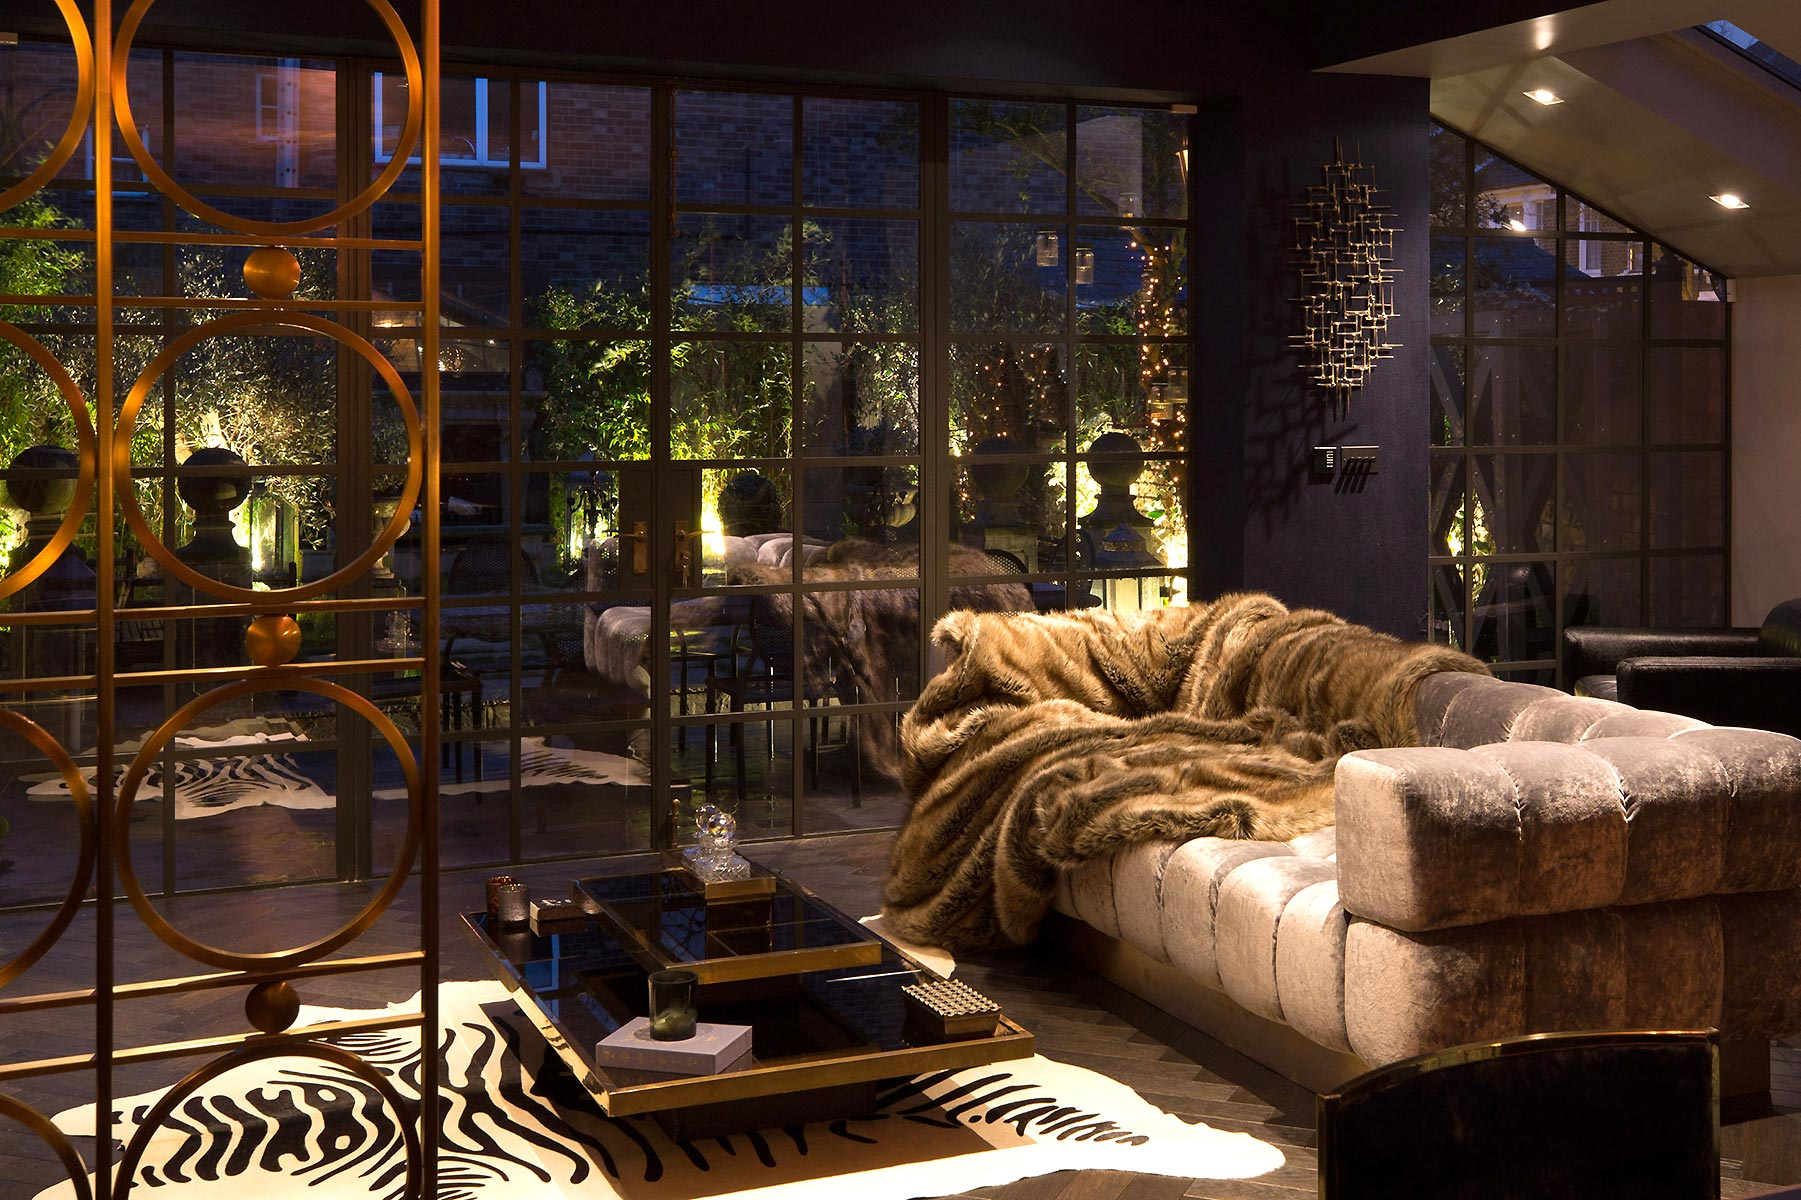 luxury interior sitting room at night in London designed by Trilbey Gordon